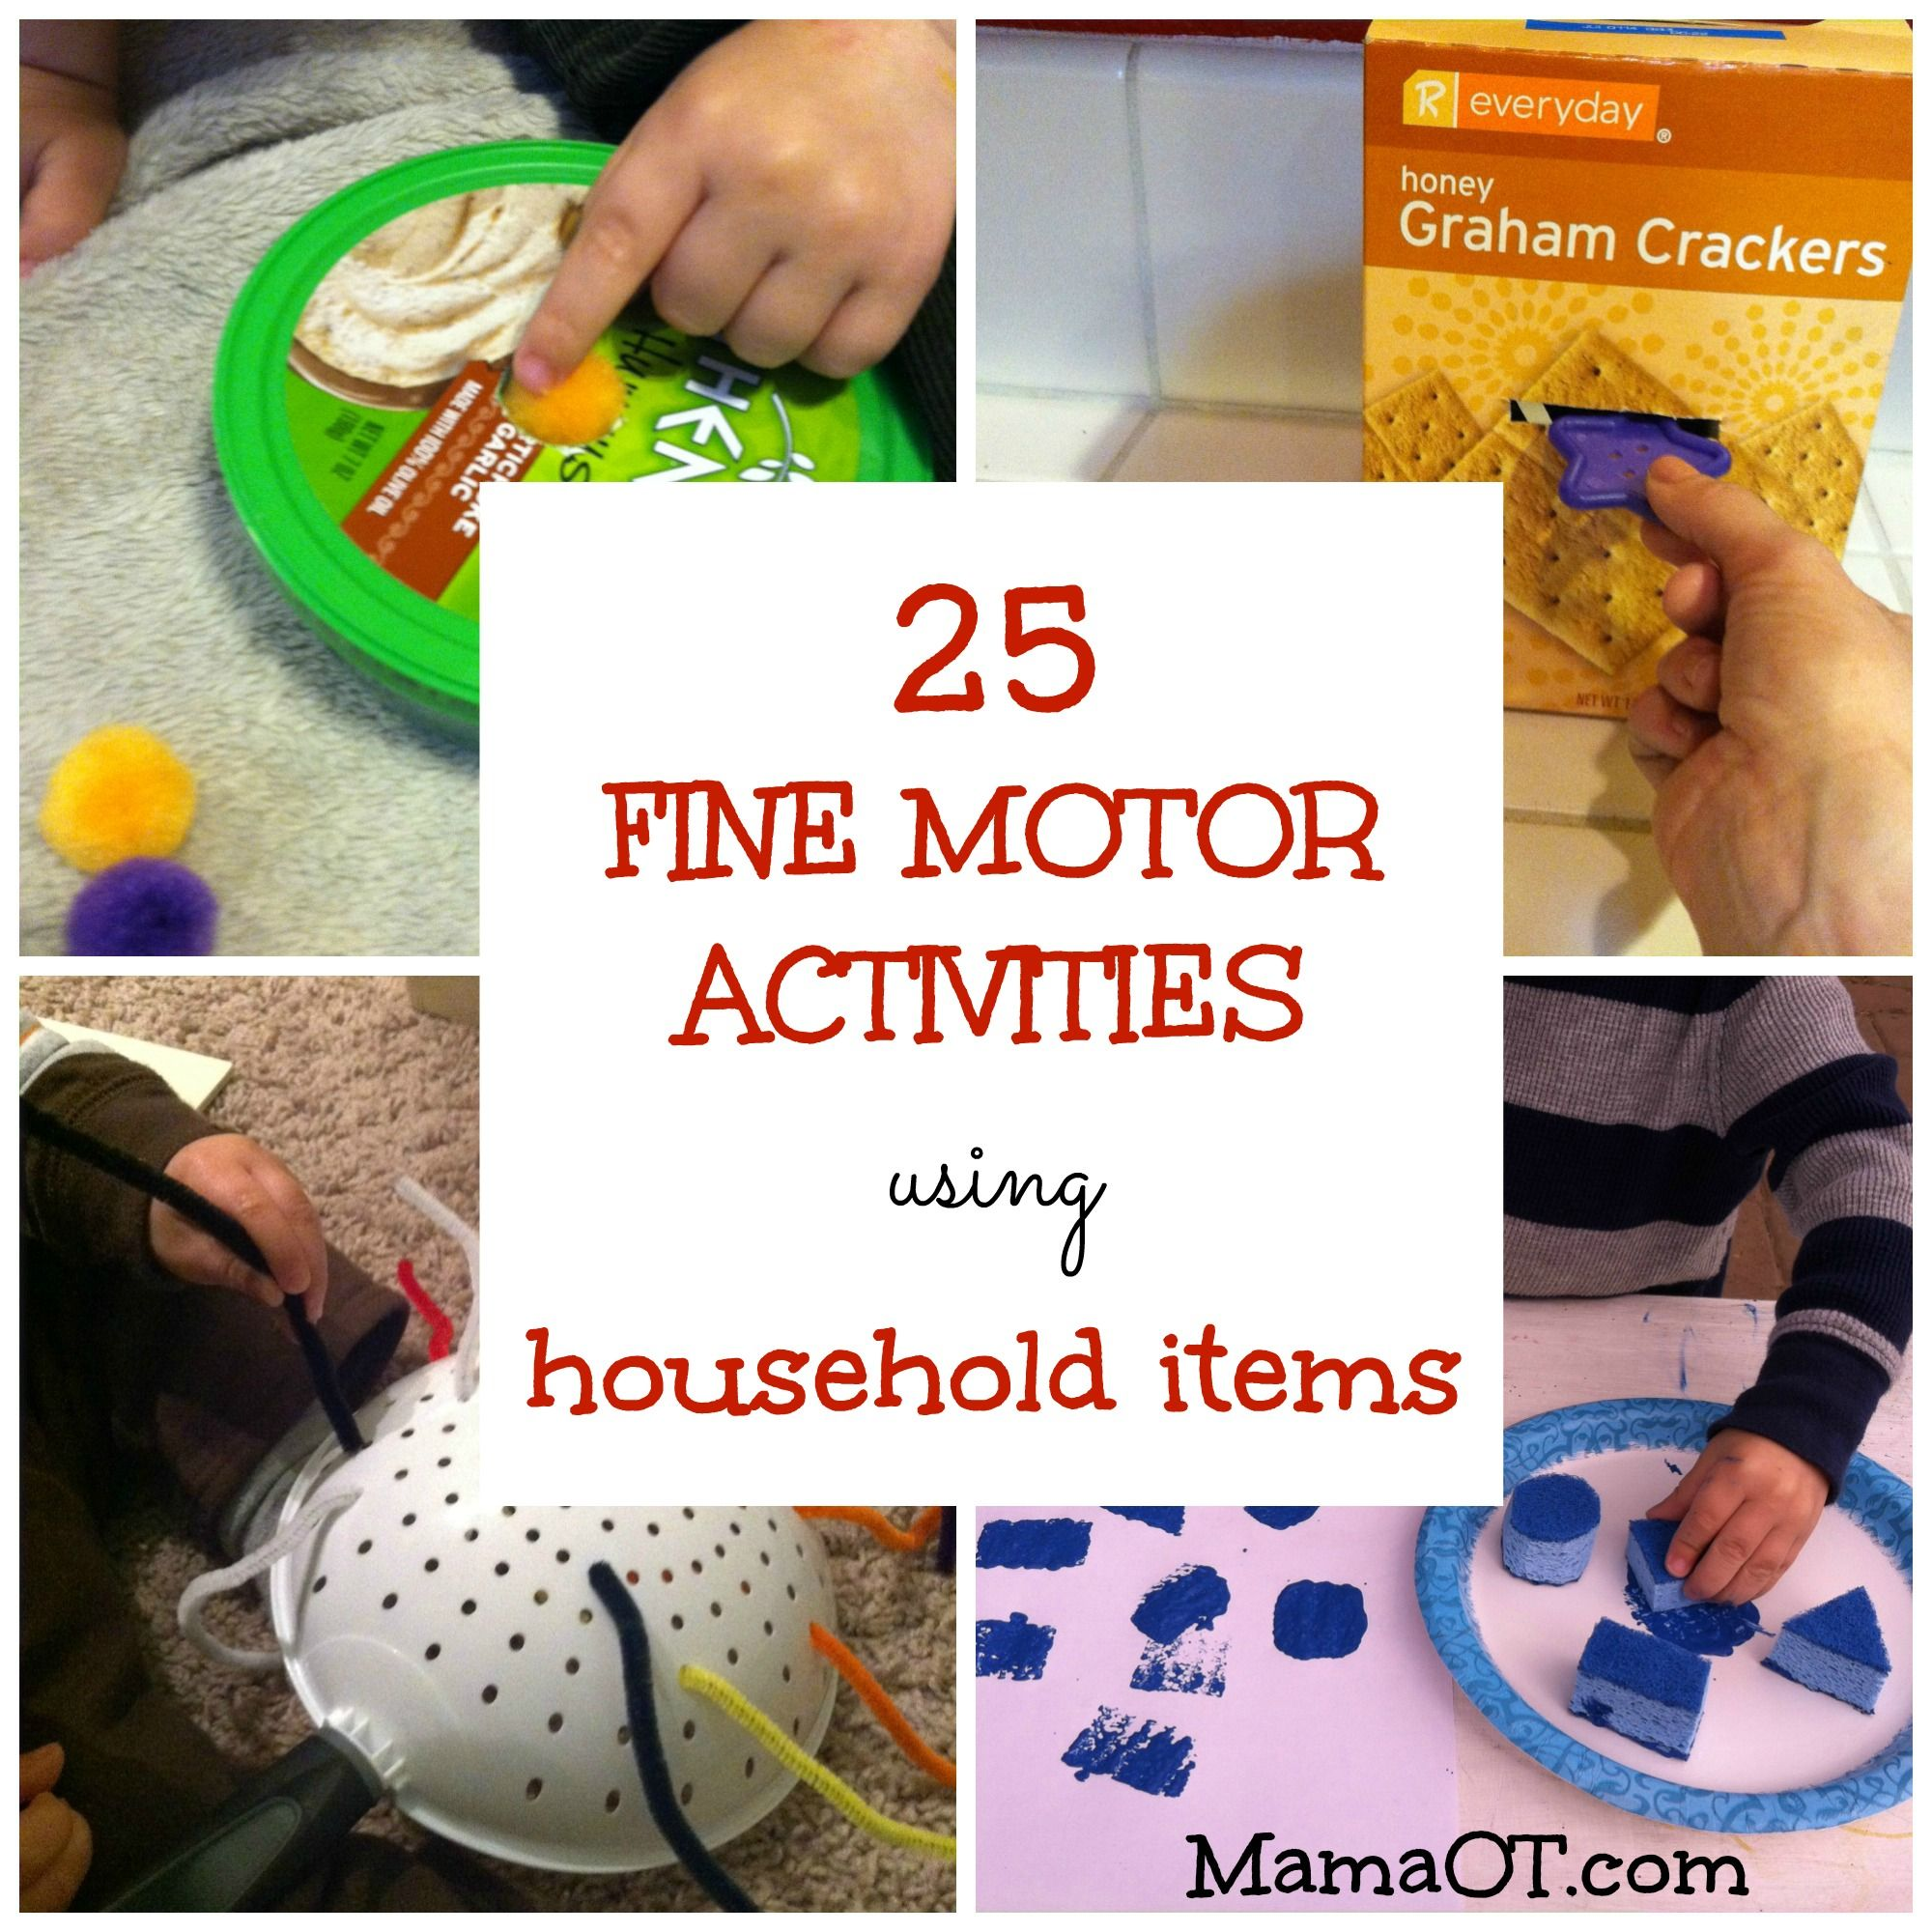 25 Occupational Therapist Approved Fine Motor Activities